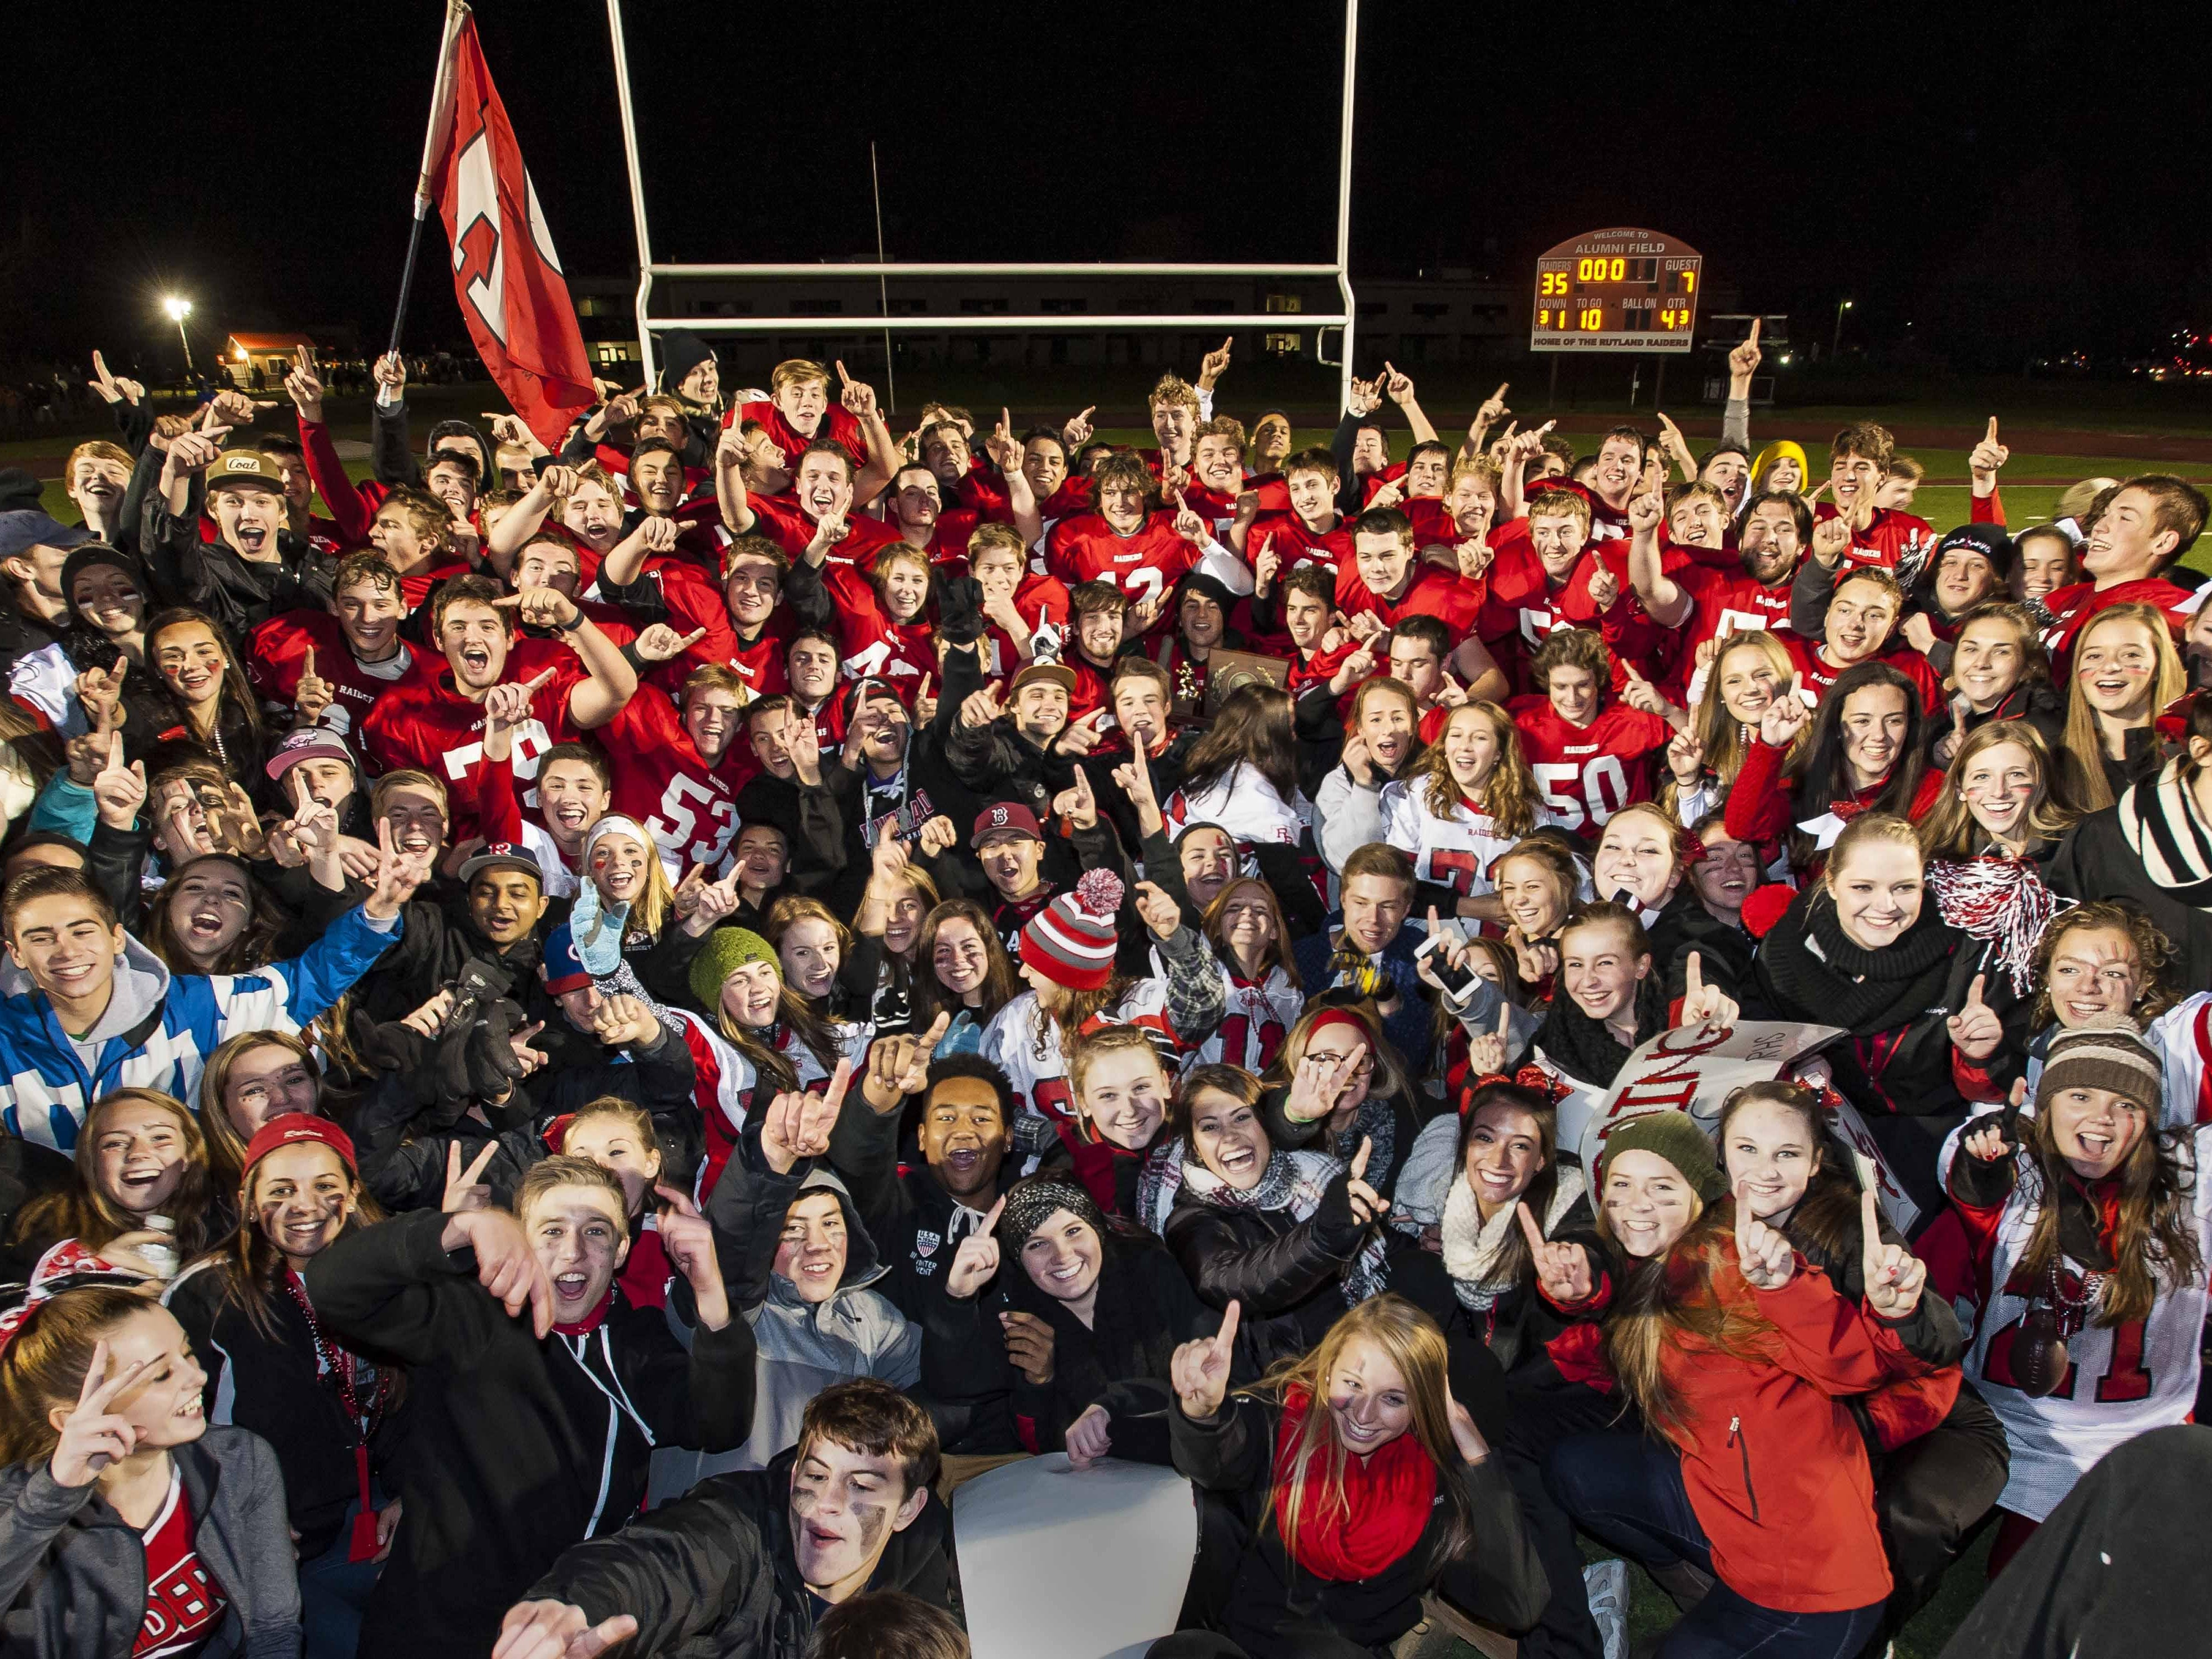 Rutland players and fans celebrate the Red Raiders' victory over Middlebury in the D1 state football championship in Rutland on Saturday, November 7, 2015.